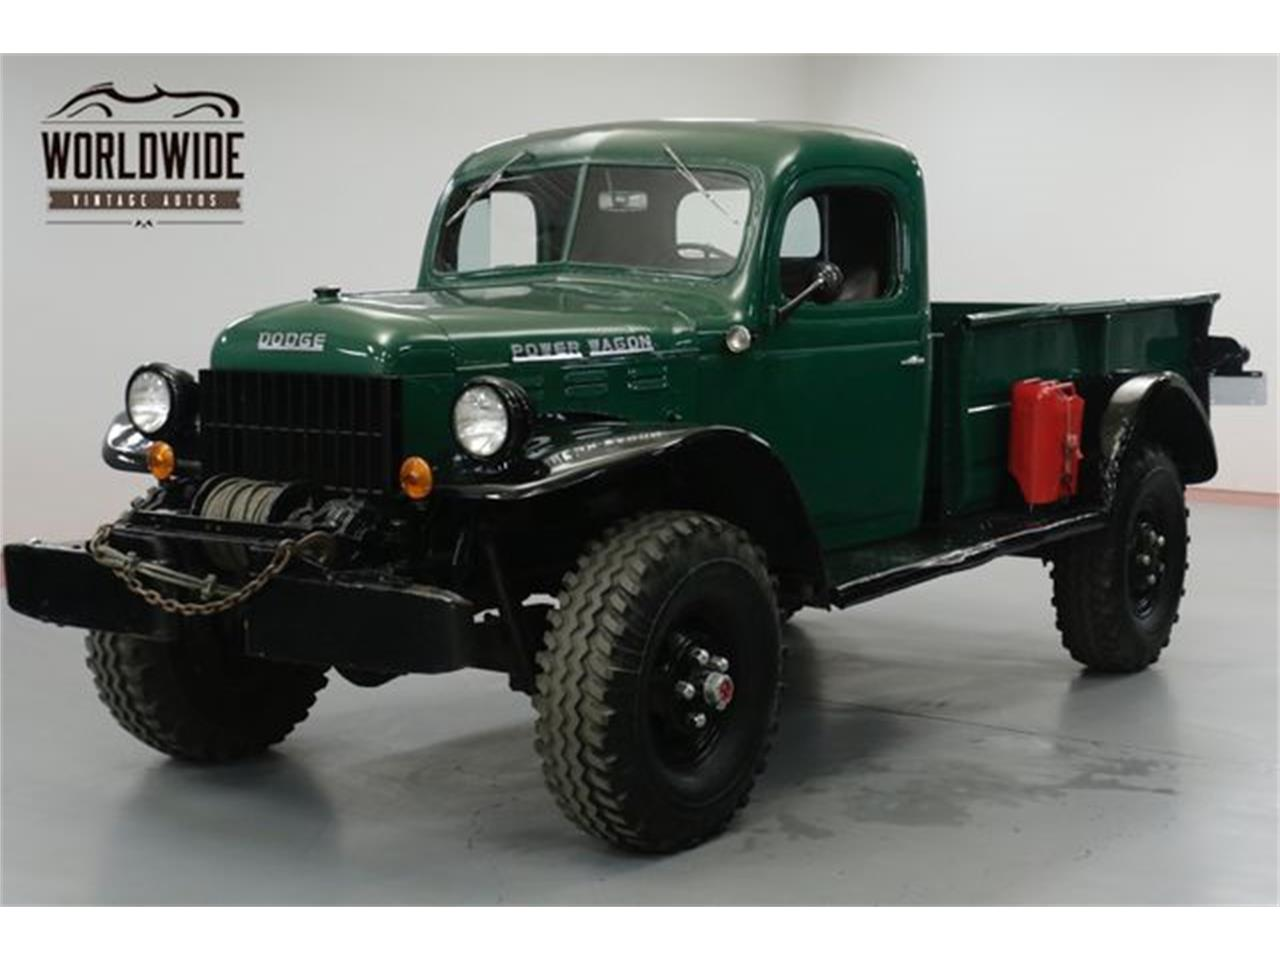 Dodge Power Wagon For Sale >> 1949 Dodge Power Wagon For Sale In Denver Co